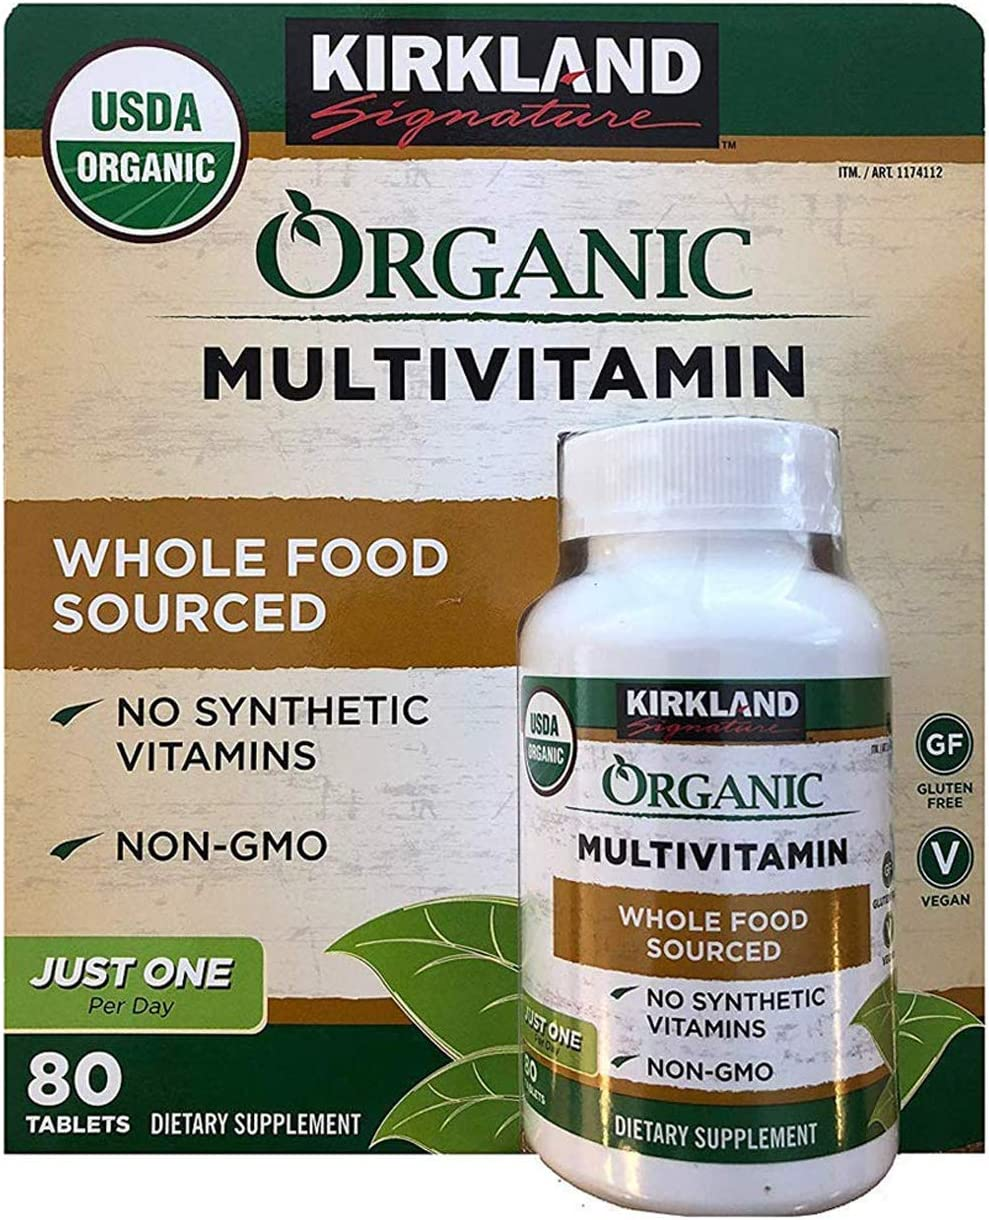 Kirkland Signature Organic Multivitamin - 80 Coated Tablets